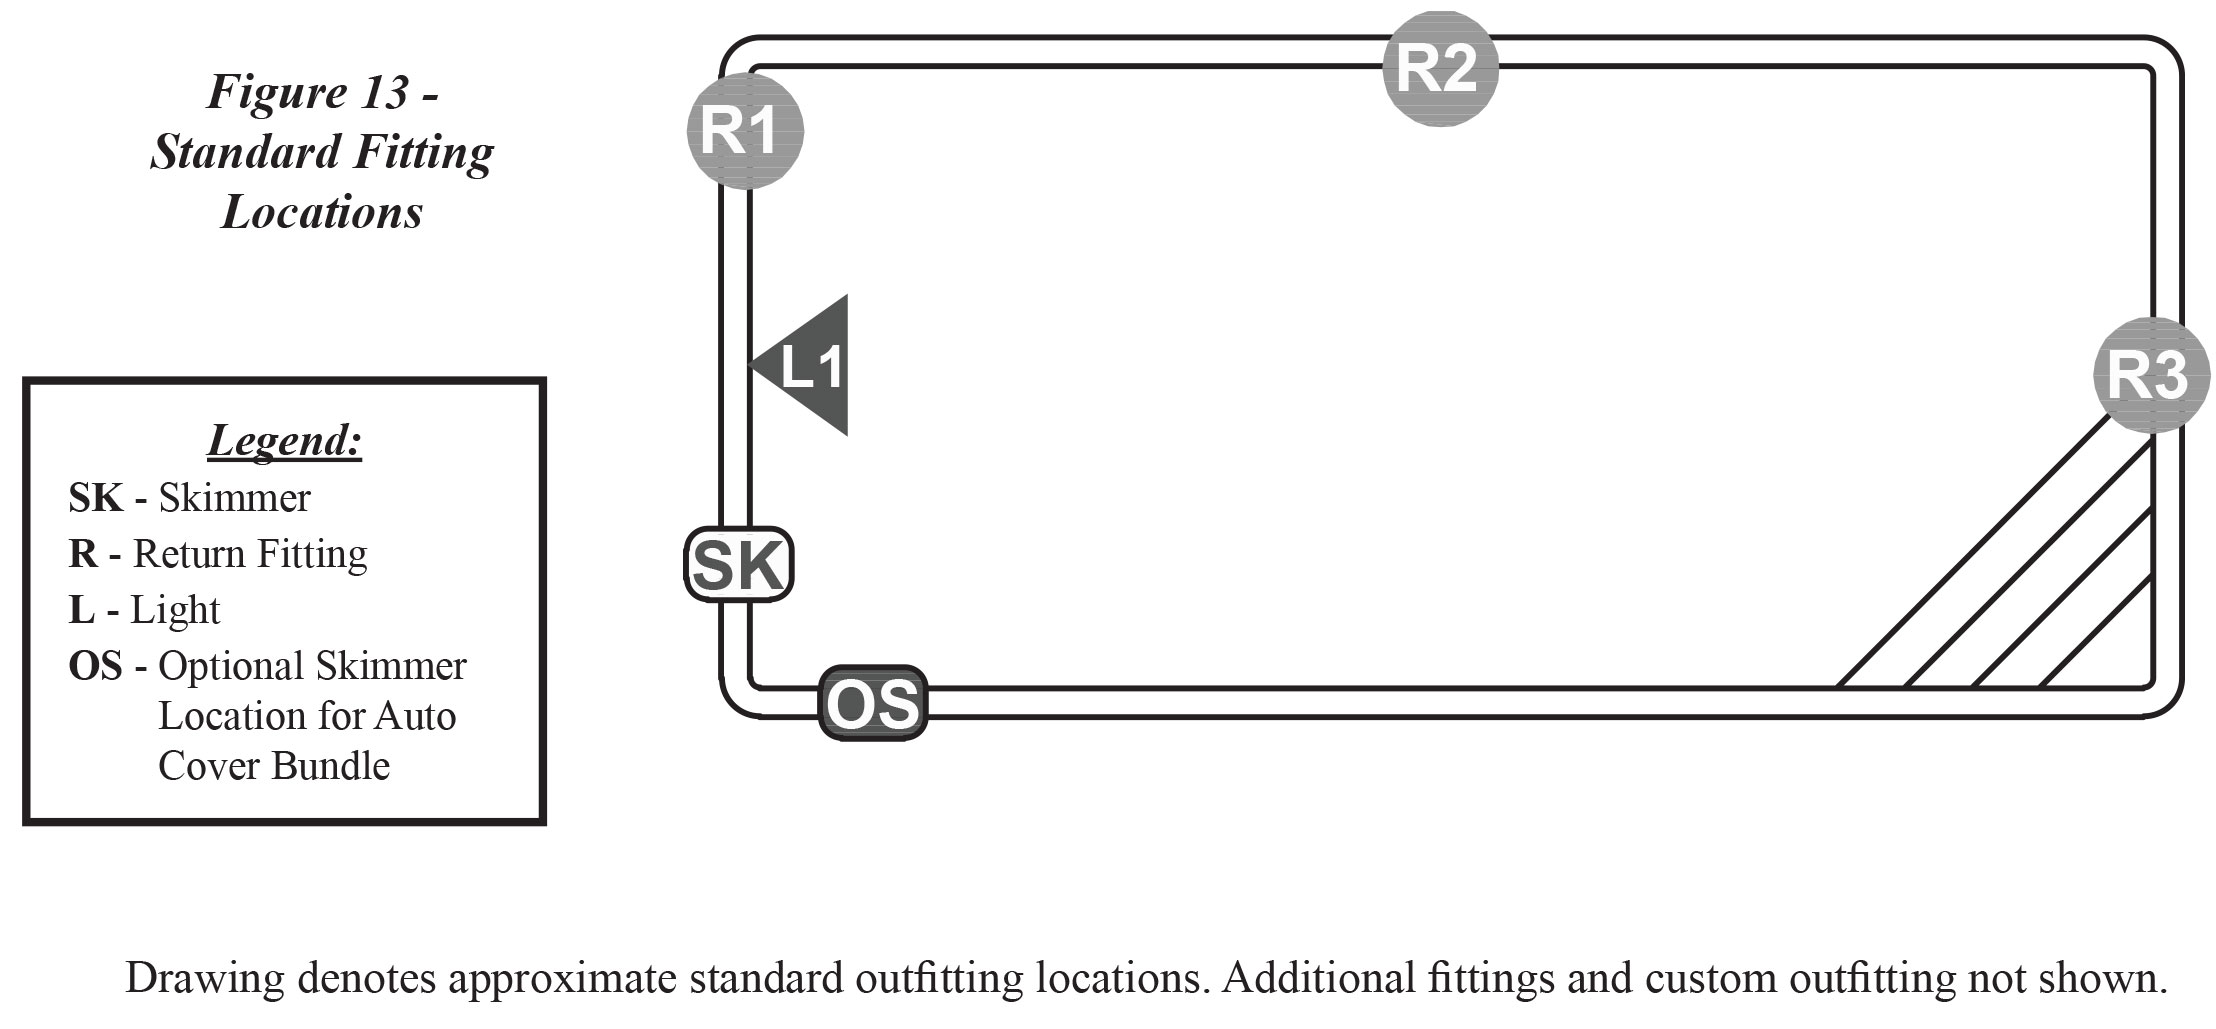 Fine wiring diagram for swimming pool light photos diagram wiring famous wiring diagram for swimming pool light ideas wiring diagram asfbconference2016 Images